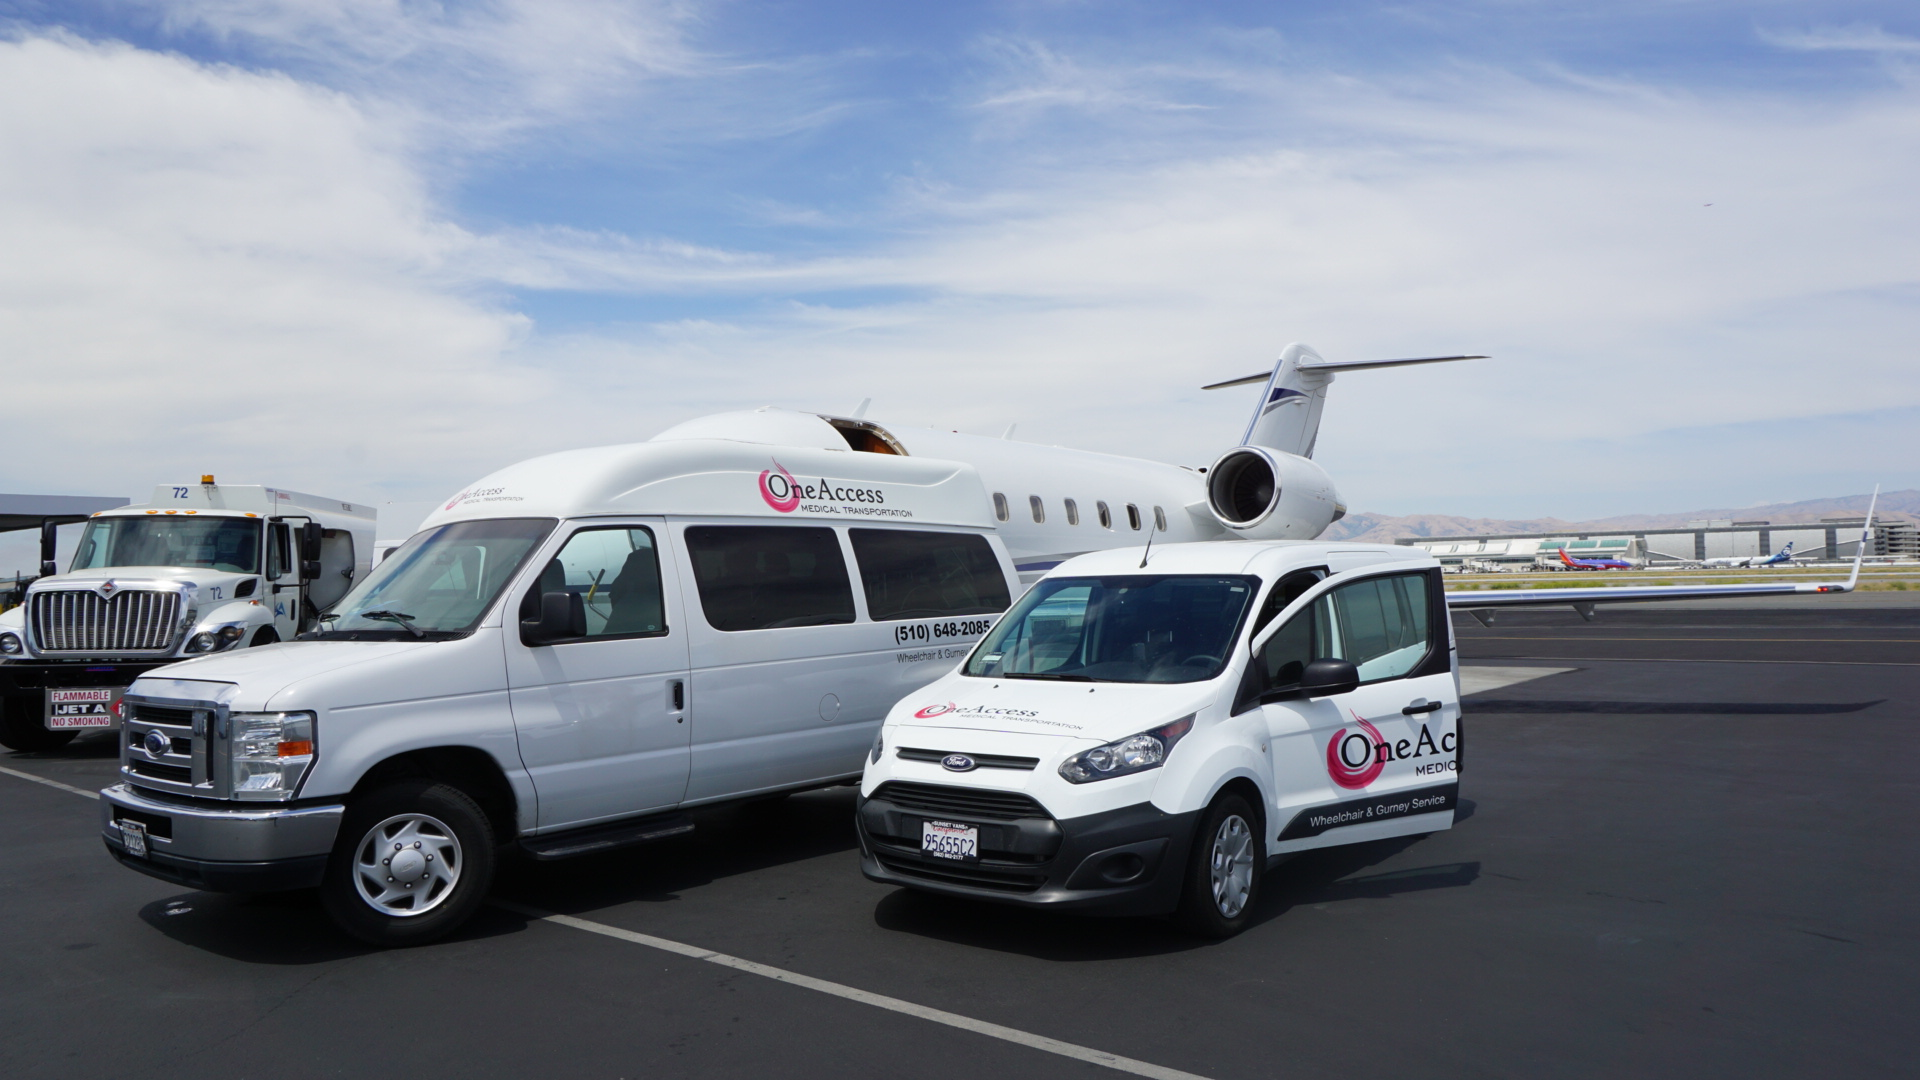 Non-emergency medical transportation San Francisco